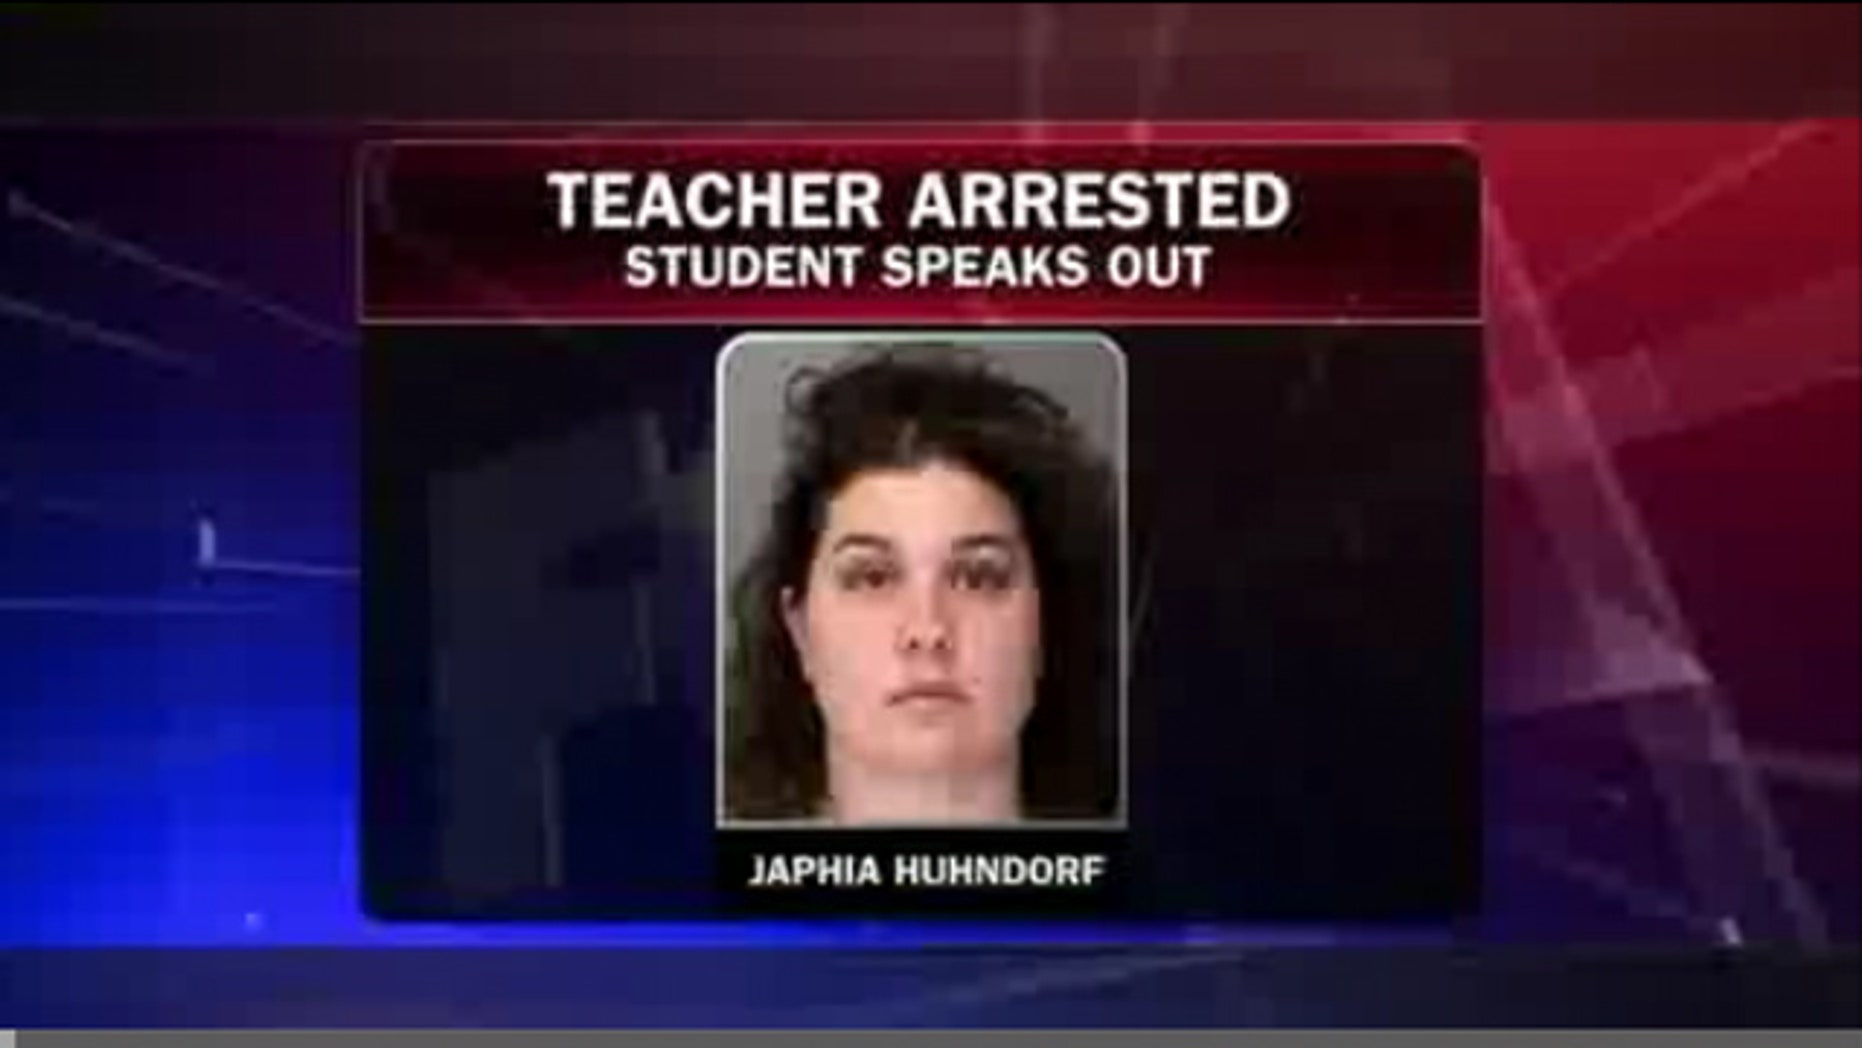 Japhia Huhndorf, a chemistry teacher at Livingston High School in Sacramento, would allegedly ordered chloroform through the school but did not use the ingredient in her lessons.